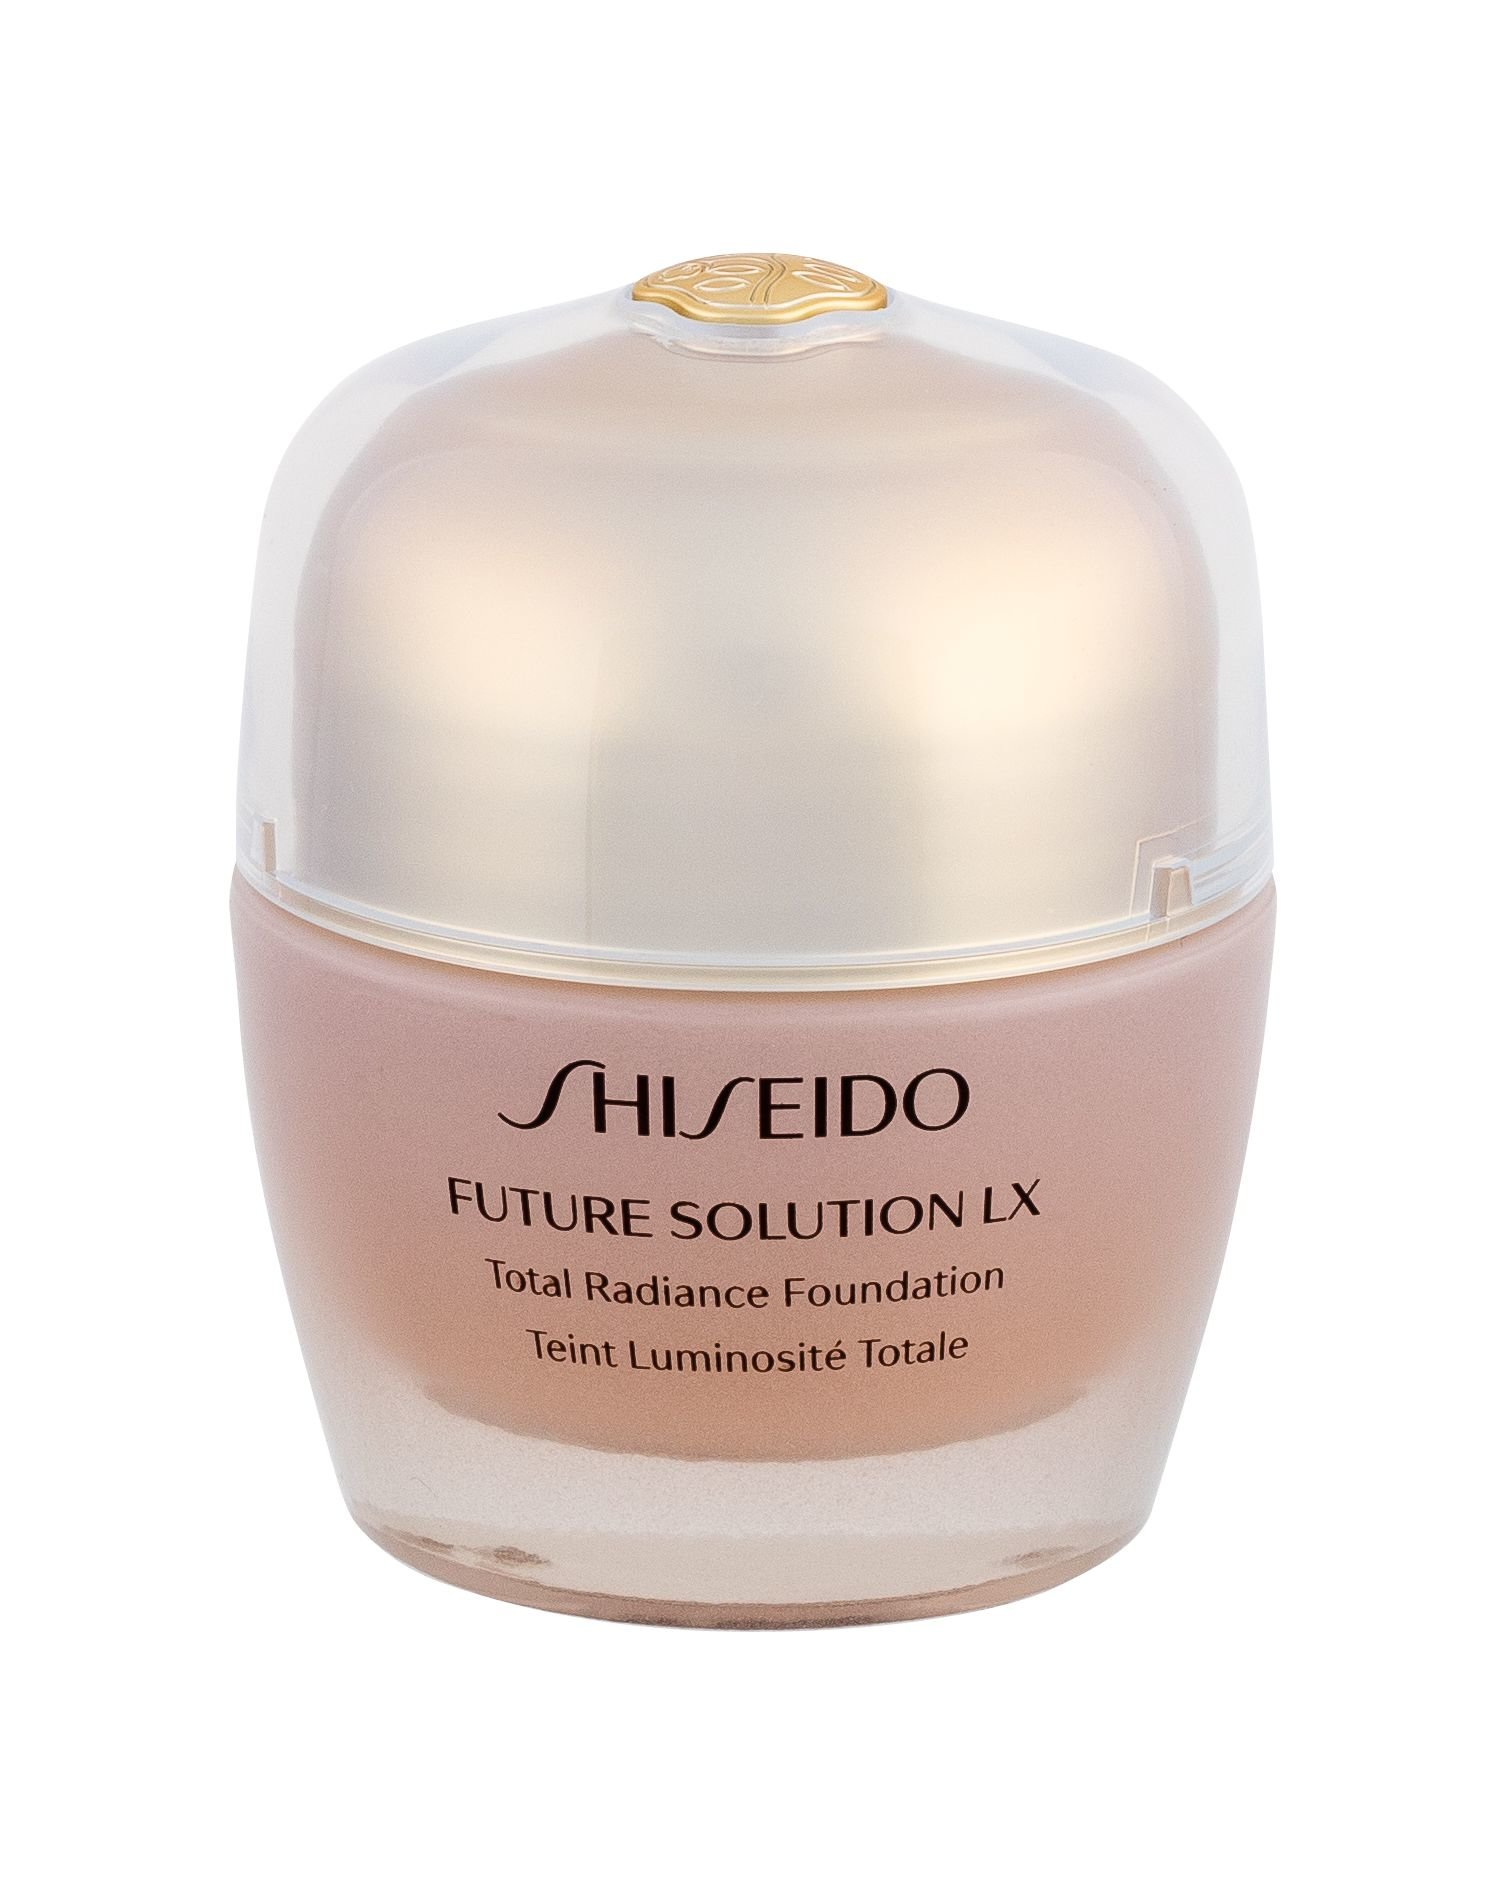 Shiseido Future Solution LX Makeup 30ml N3 Neutral